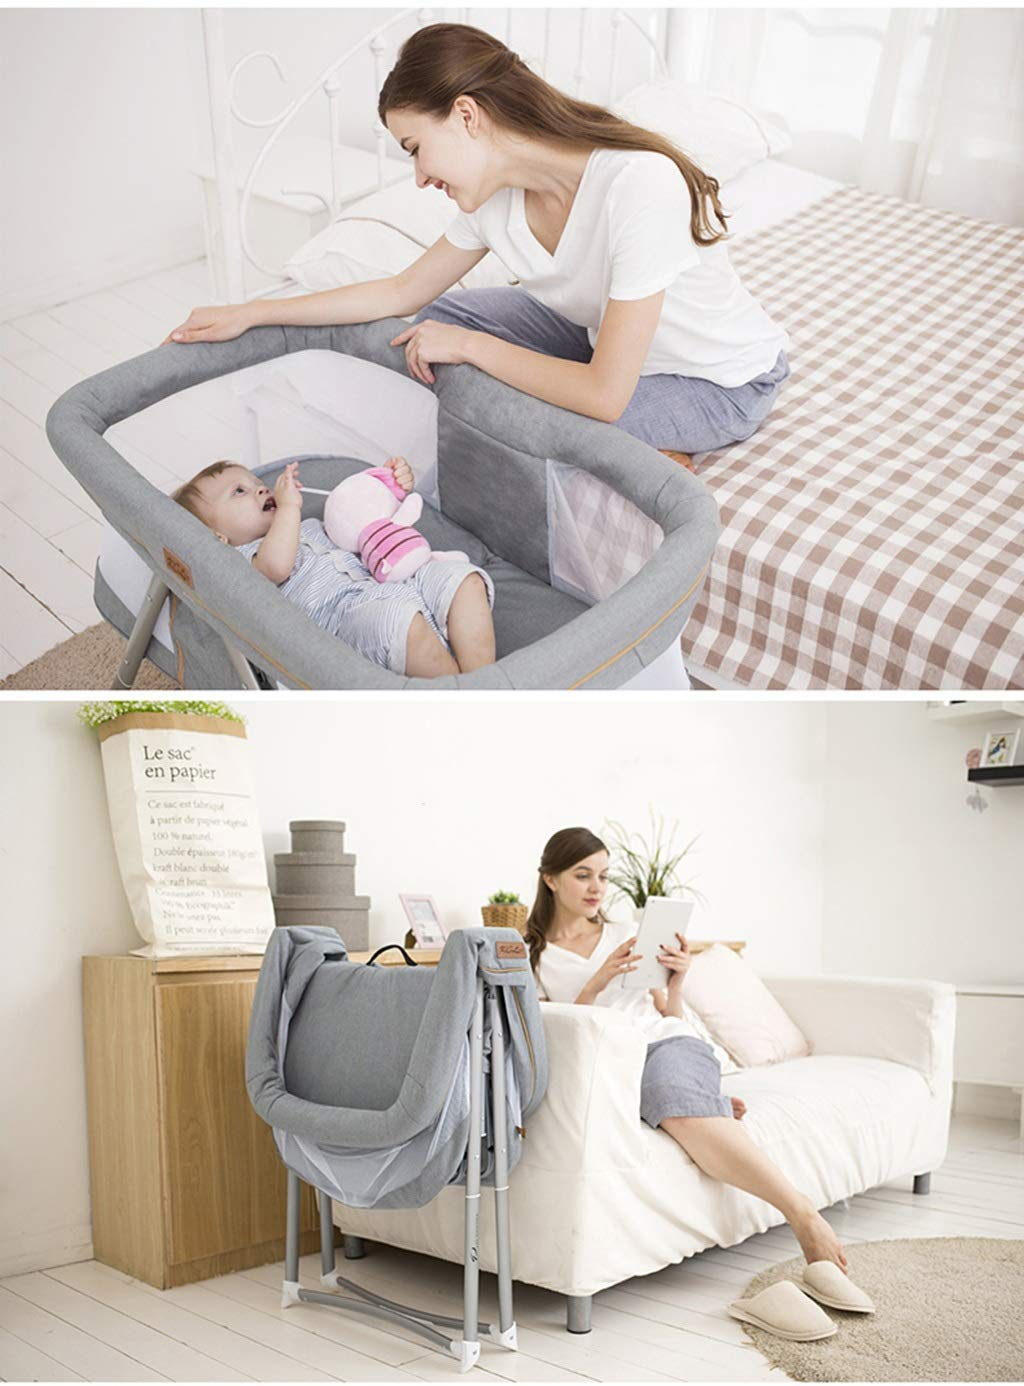 Multifunction Baby Cot, Mosquito Net Metal Foldable Space Saving Shaker Bedside Travel Bed, 54 * 91 * 66CM (Color : Gray) Zhao ♥ Product Name: Multifunctional crib / / Size: 54 * 91 * 66CM / / Material: cloth; ♥Characteristics: widening and widening, high fence, no need to worry about naughty baby turning over, easy to install, one-handed one-button storage, fine-woven high-density linen, not easy to wrinkle, encrypted polyester mosquito net, high-molecular alumina thickened tube, Strong bearing capacity; ♥Bionic uterus design, give your baby enough safety, let the baby sleep sweetly; 4